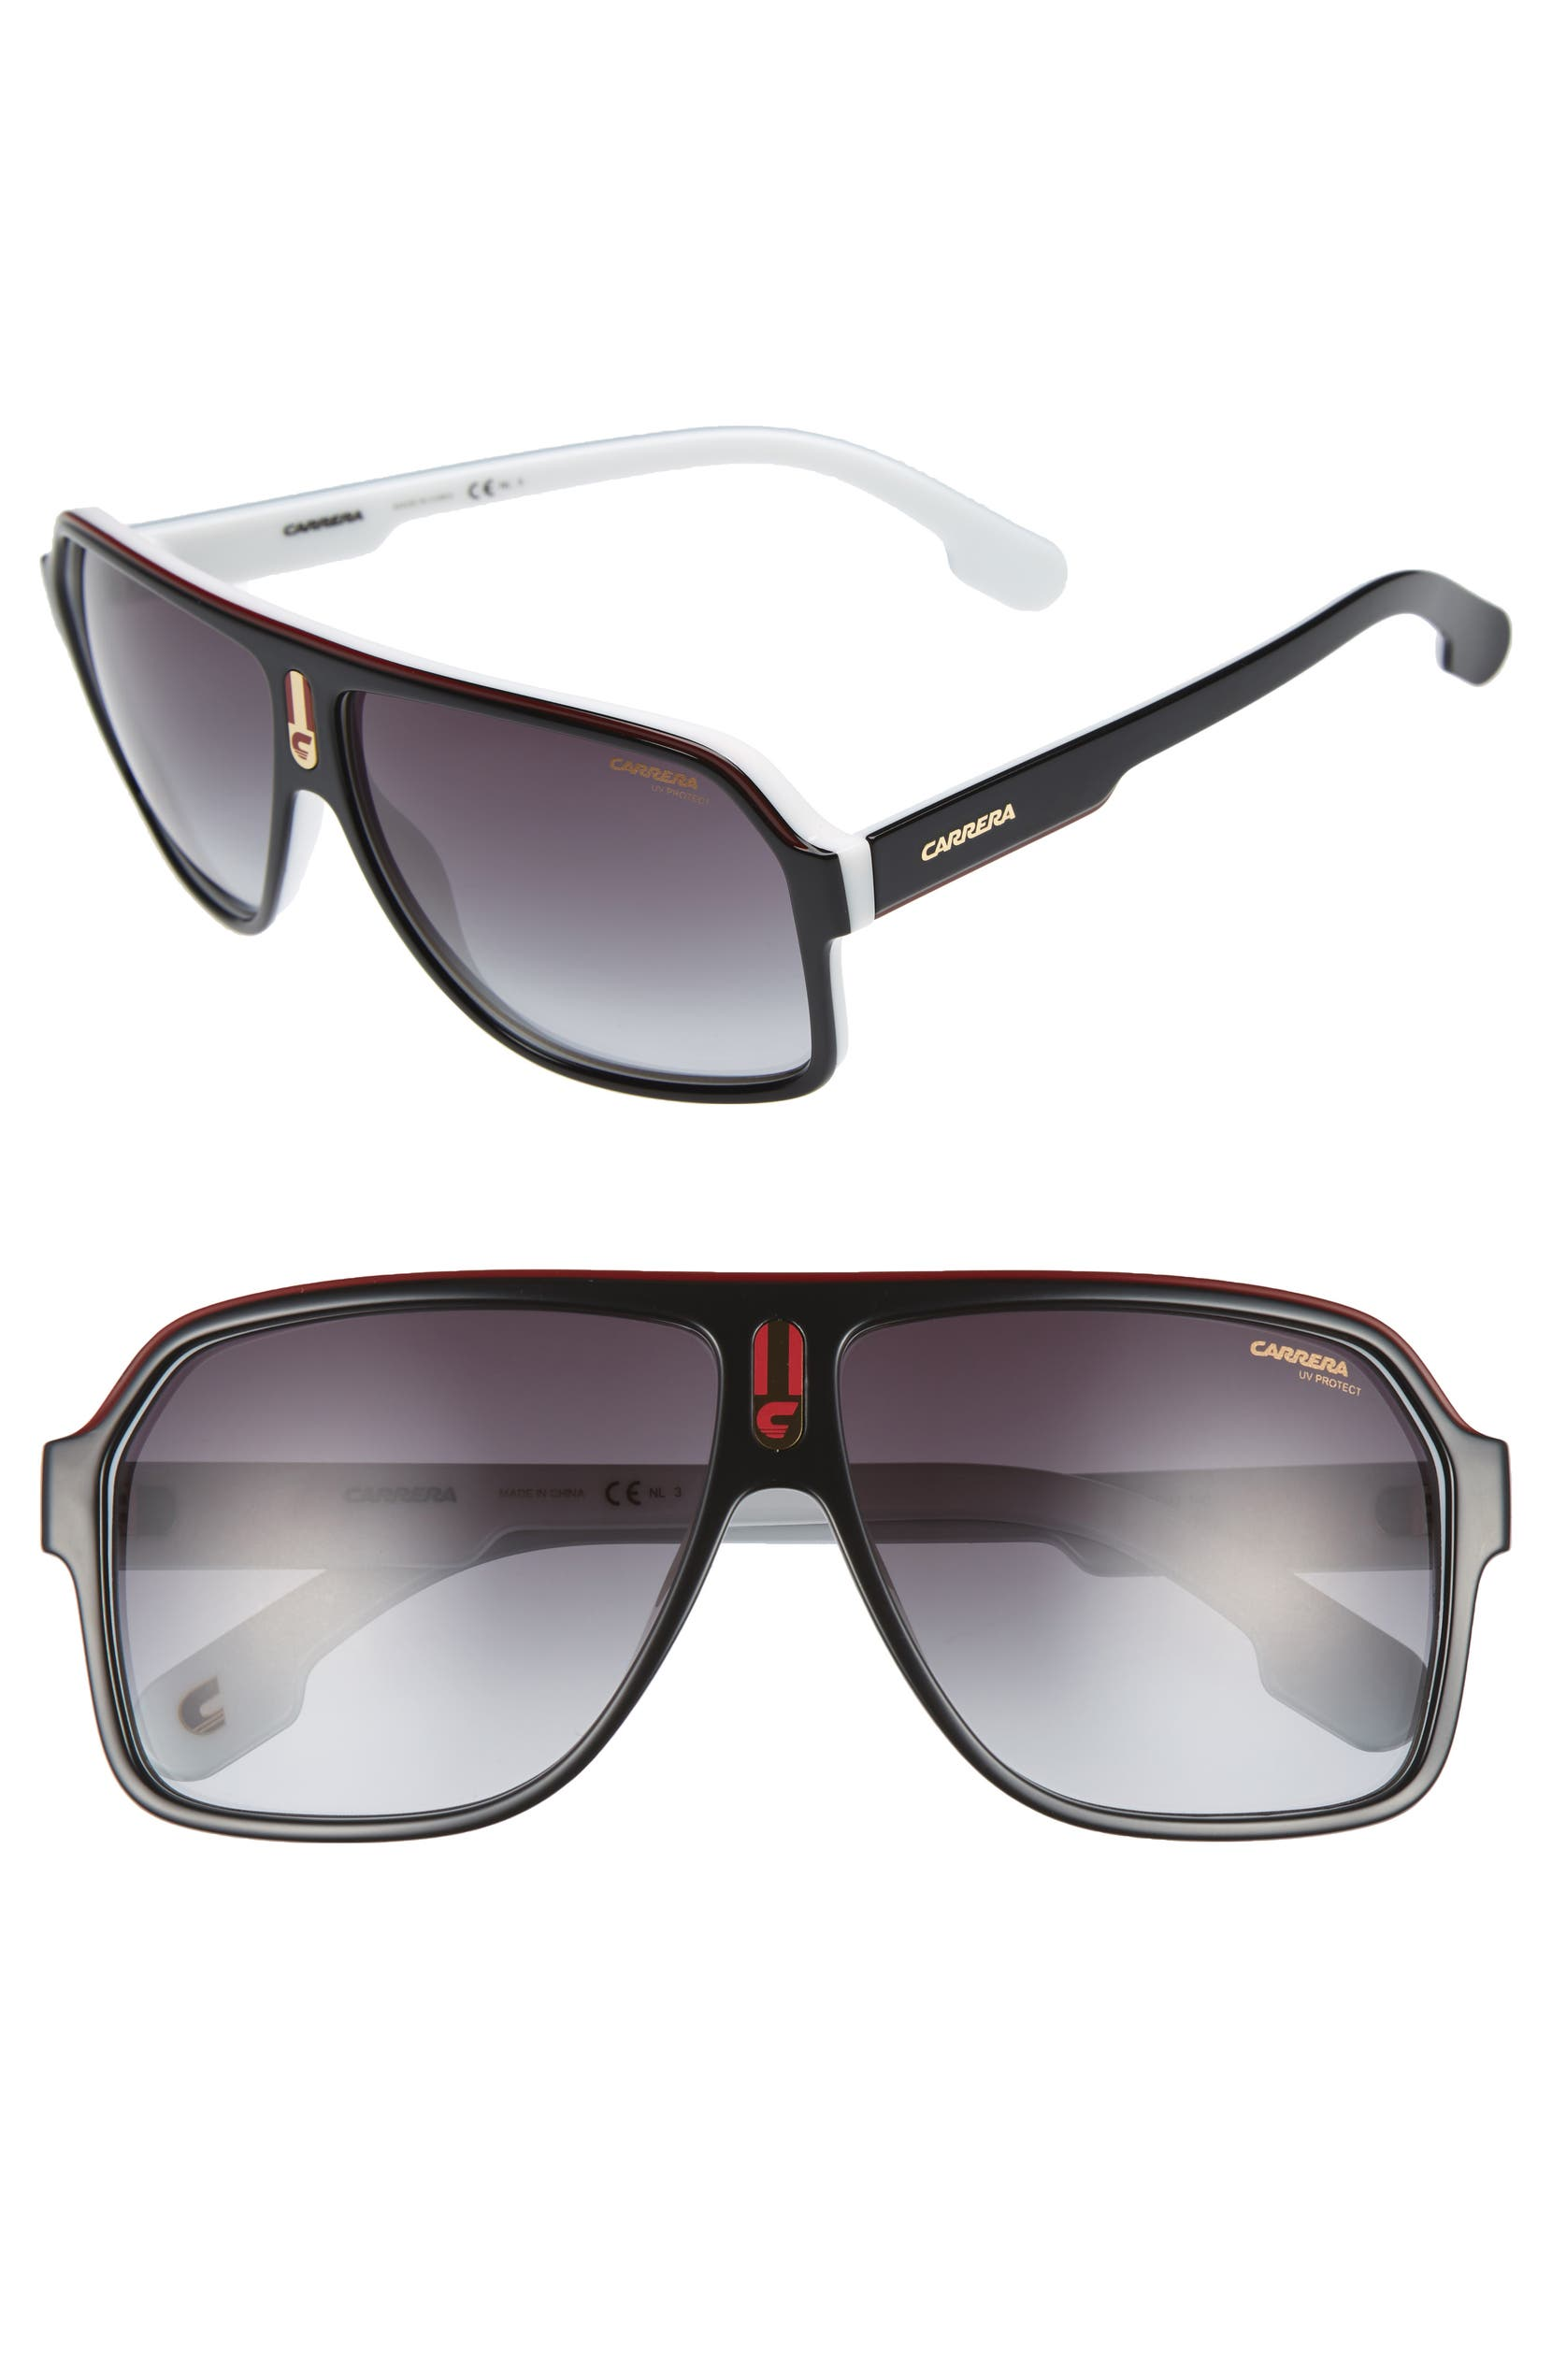 62mm 1001s Sunglasses Eyewear Carrera Nordstrom F0q1ff